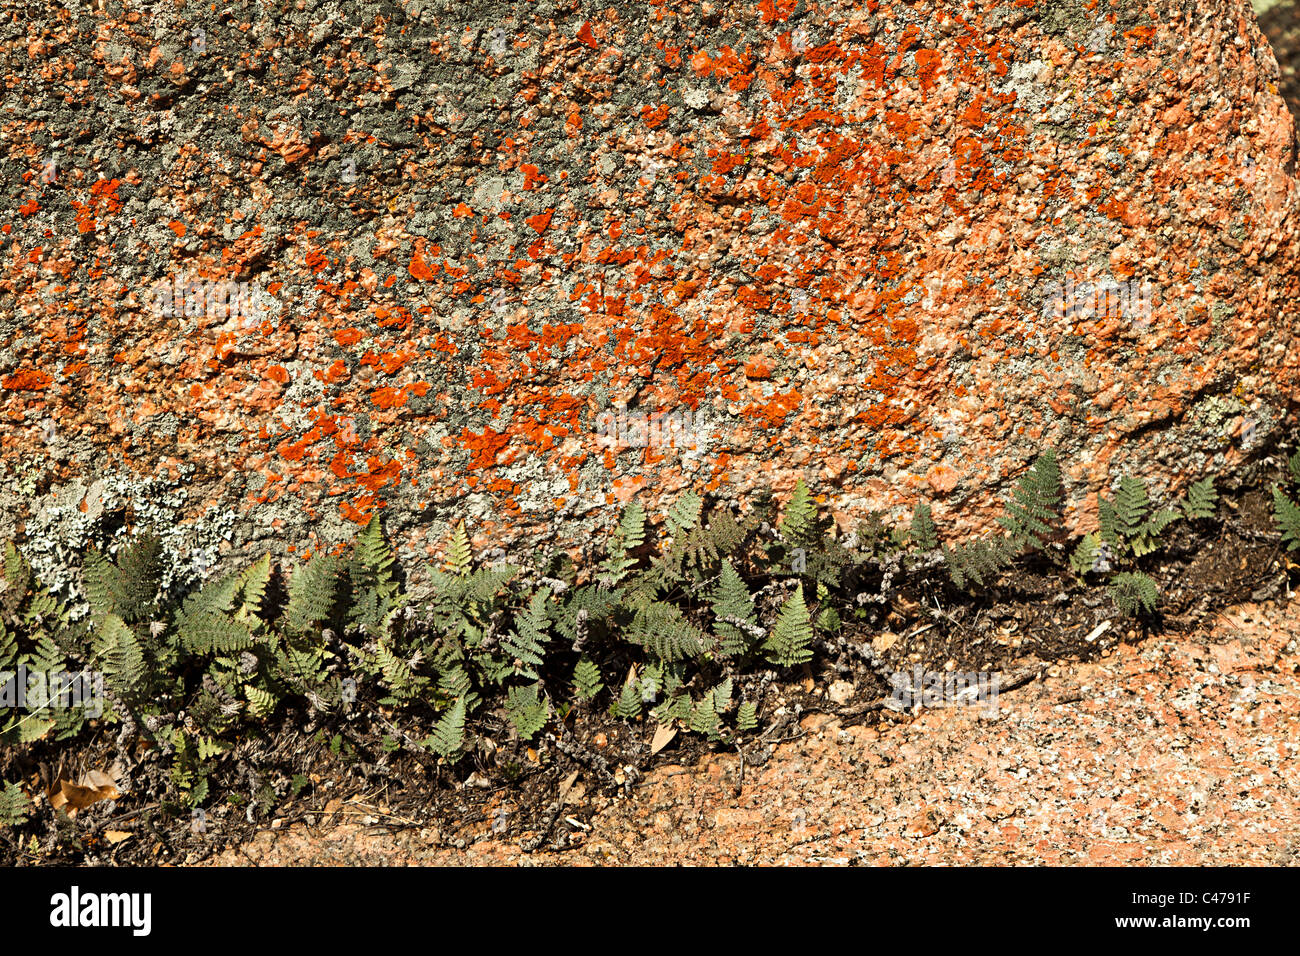 Ferns surviving in narrow crack at base of lichen covered granite boulder Enchanted Rock State Natural Area Texas - Stock Image